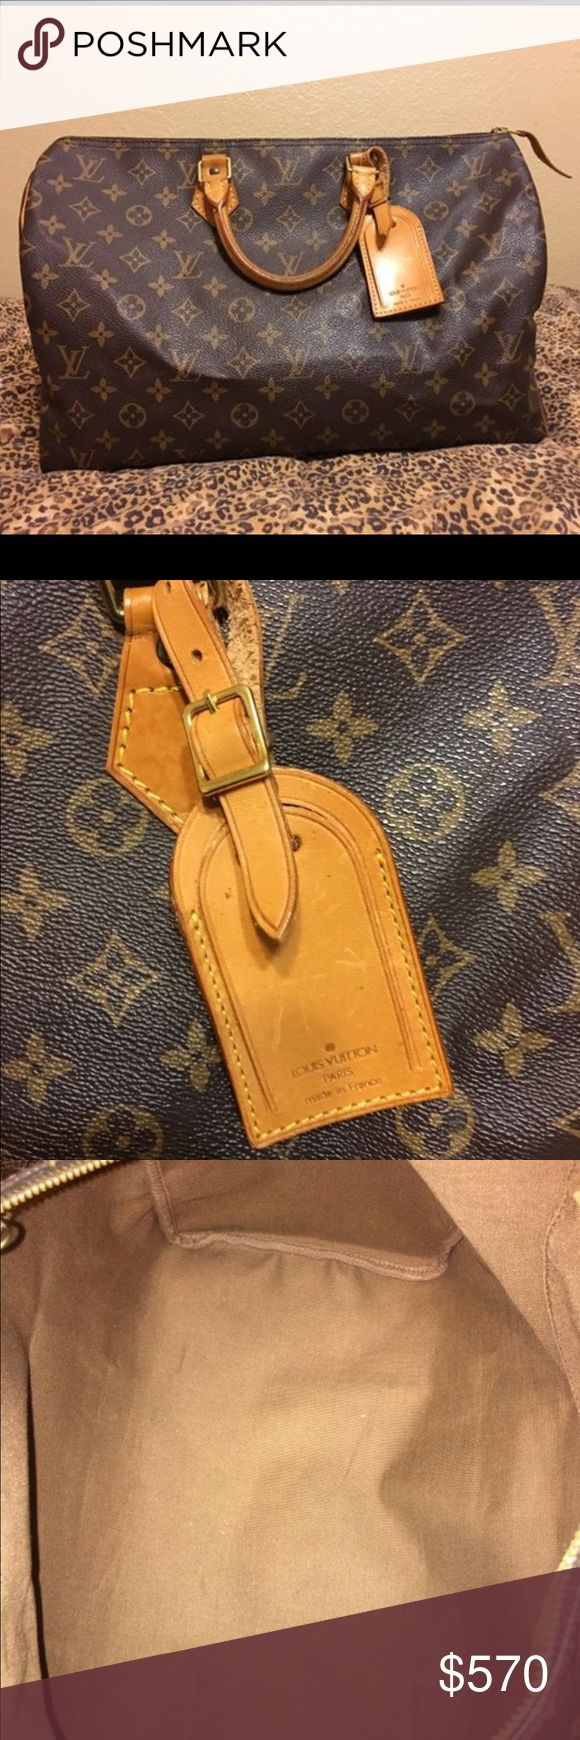 Louis Vuitton Speedy 40 Authentic LV Speedy 40. Wrinkled side tab as shown but other than that, great preloved condition!    No dustbag, no box, no receipt.    Includes luggage tag and base shaper. 🛑NO TRADES PLEASE. 🅿️🅿️ $420 free ship. Louis Vuitton Bags Satchels